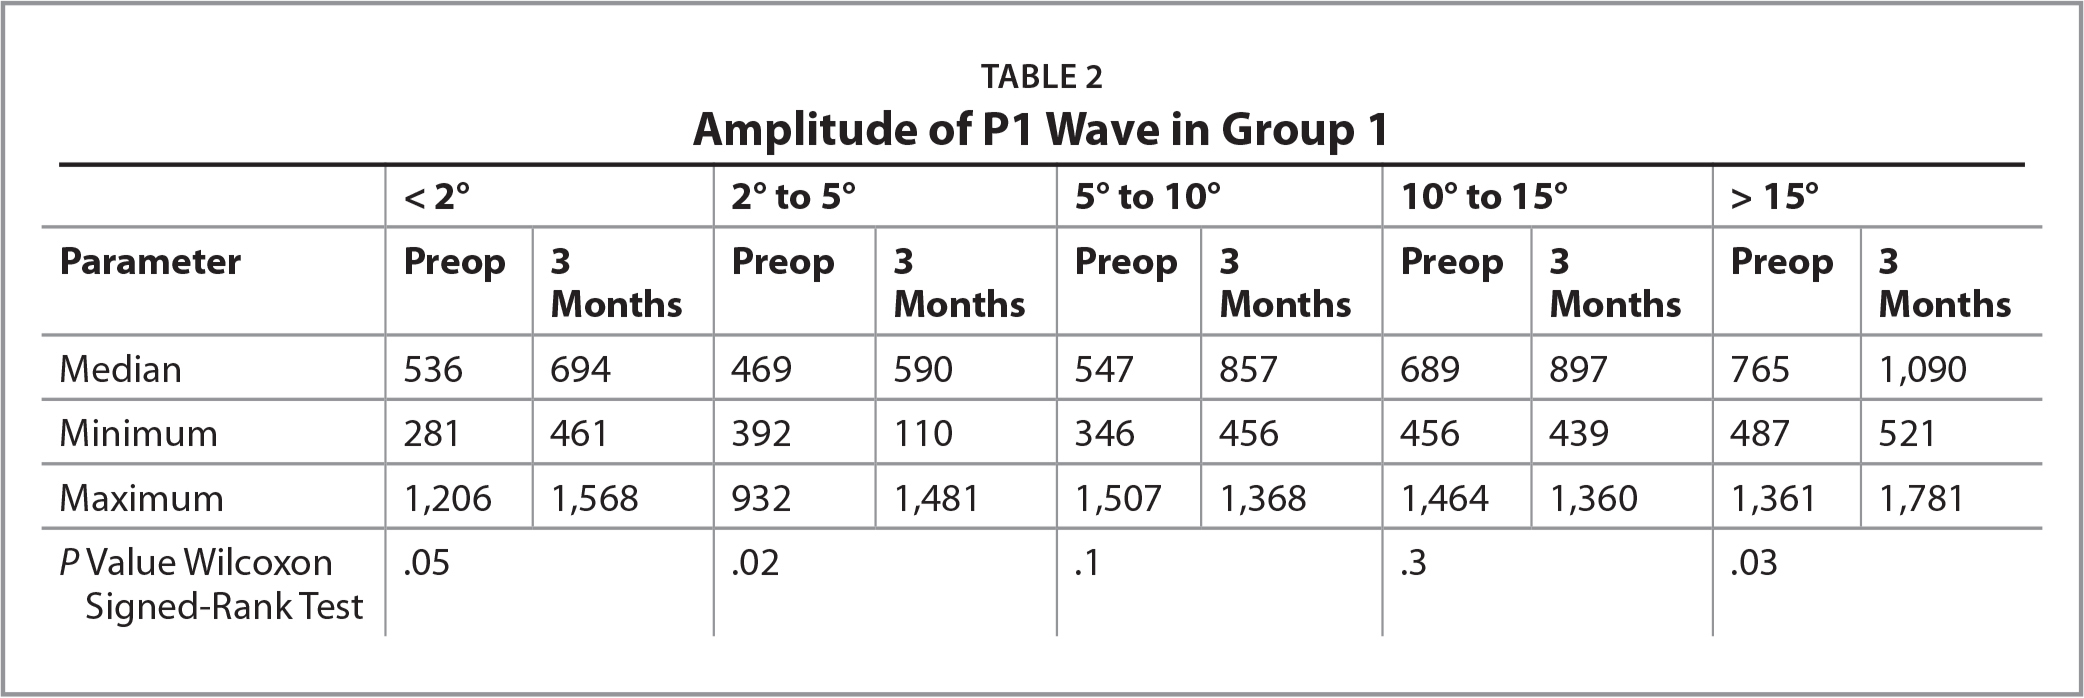 Amplitude of P1 Wave in Group 1